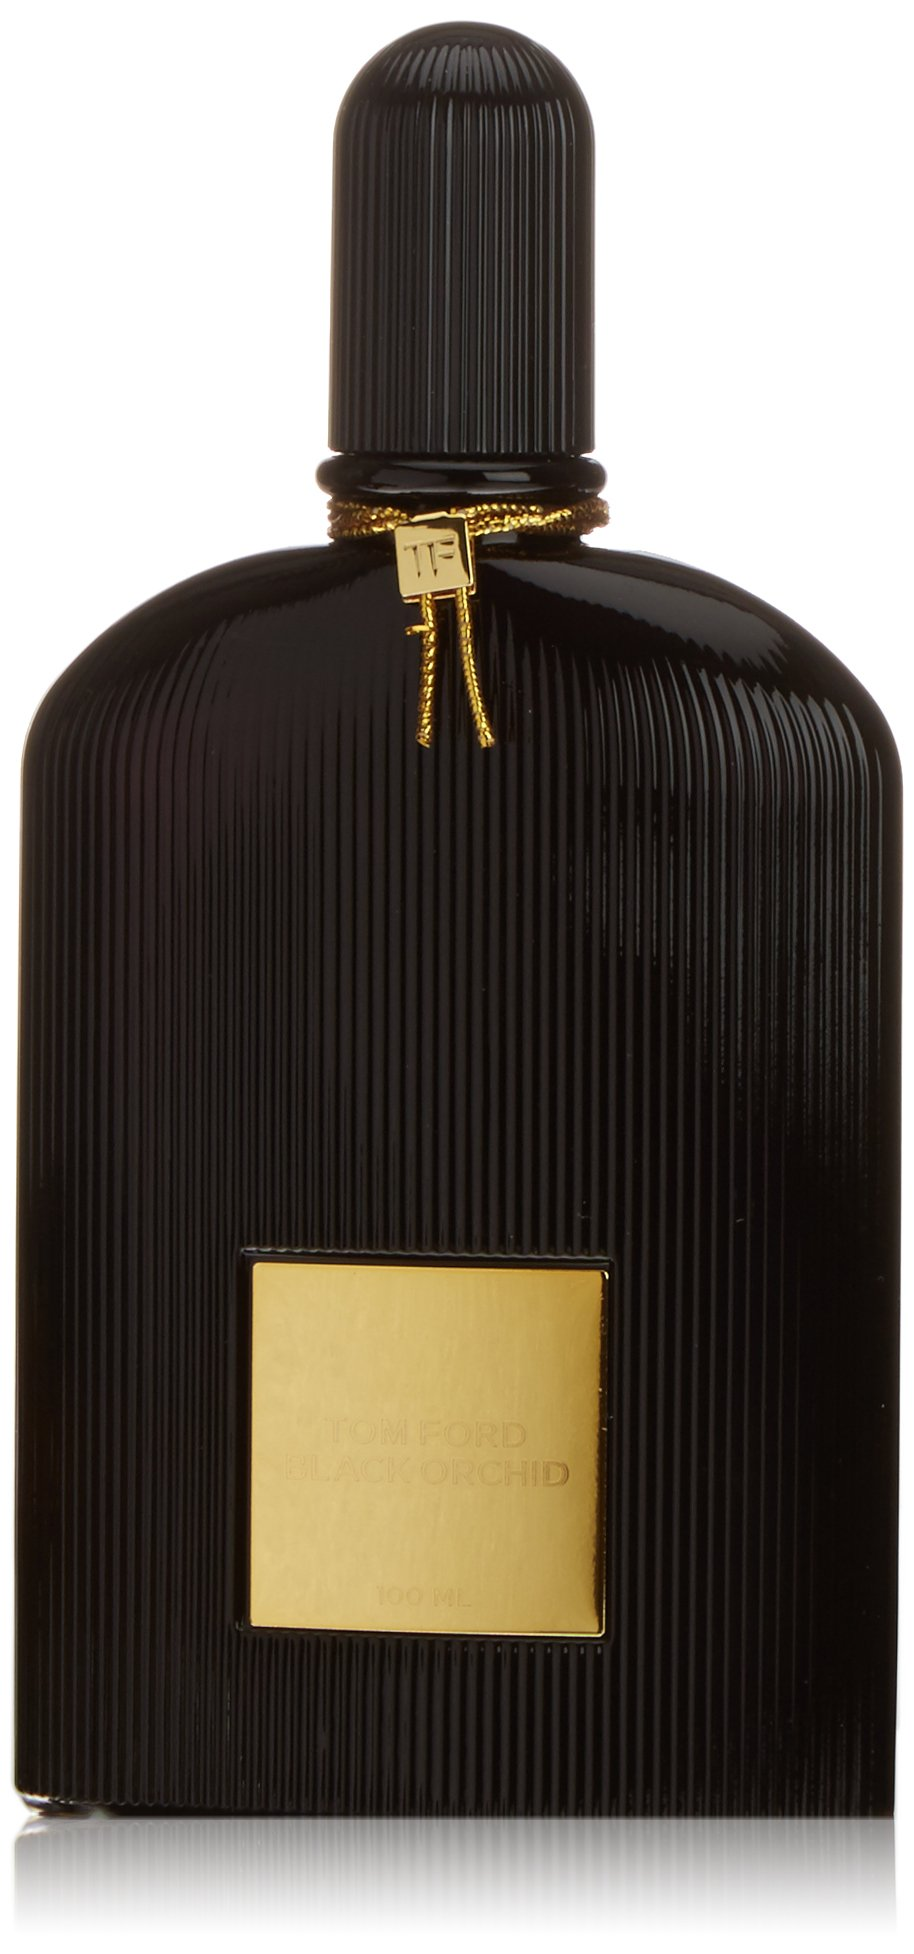 ccac4ef9f4a Amazon.com   Tom Ford Black Orchid By Tom Ford For Women. Eau De Parfum  Spray 3.4-Ounces   Tom Ford Perfume For Women   Beauty